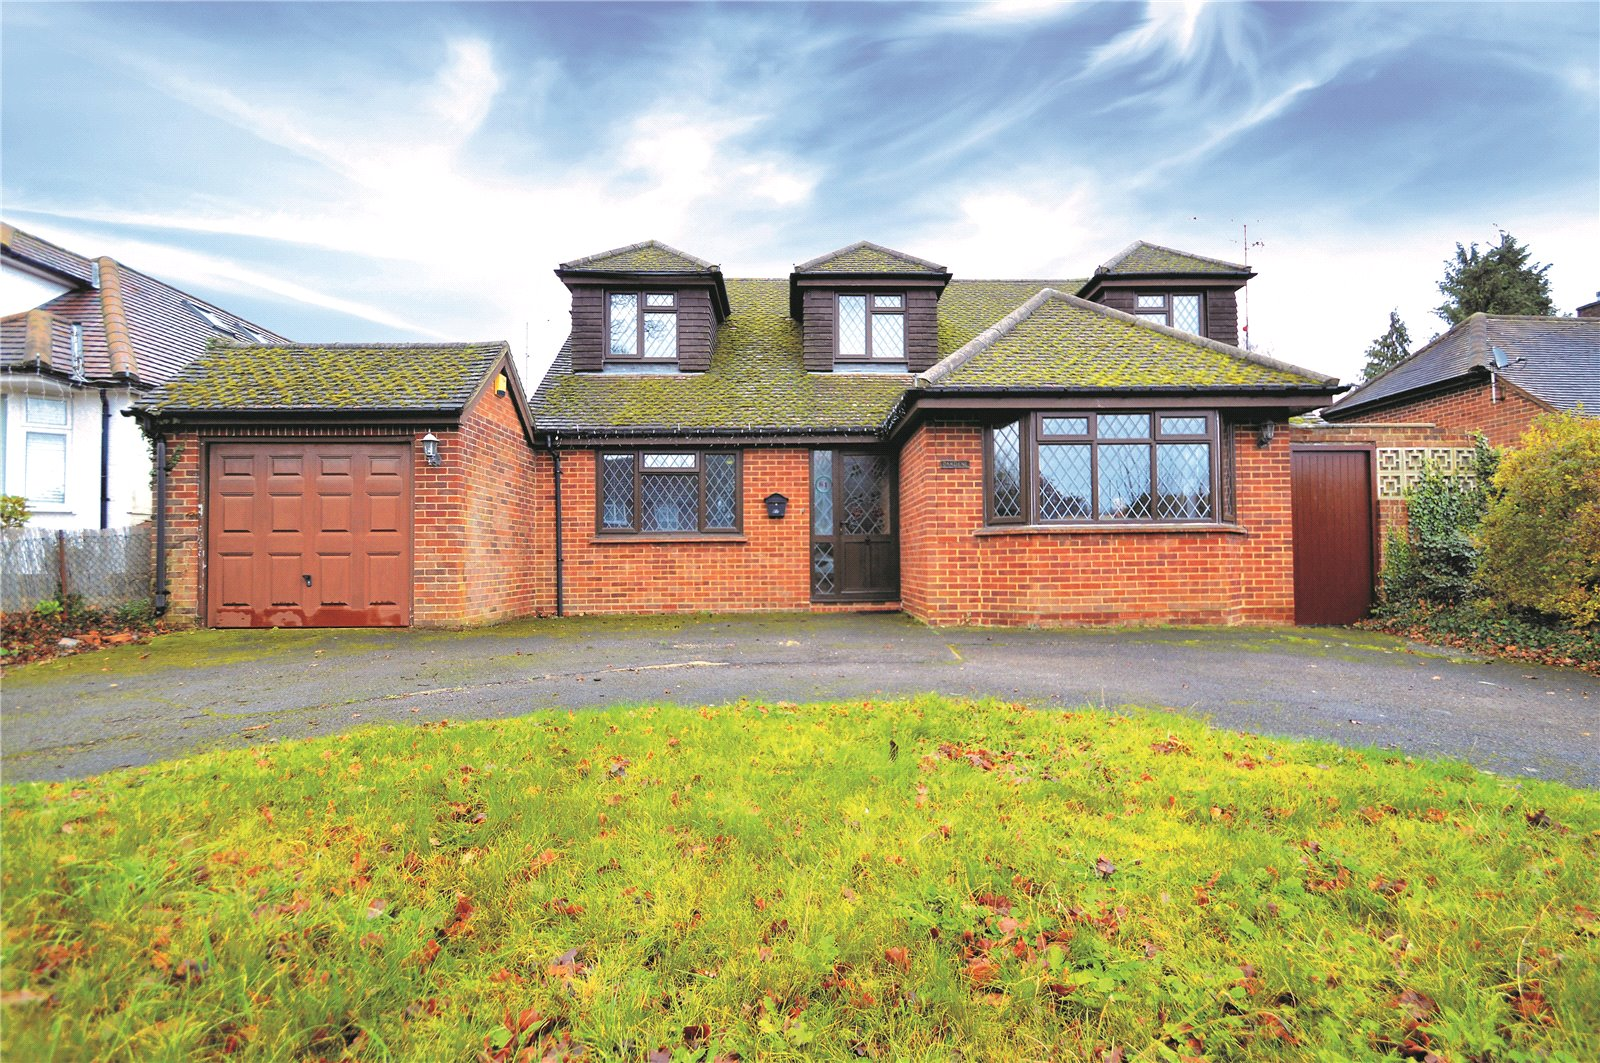 Property for sale | 5 Bedroom Detached House property in Wokingham, Berkshire, RG41 |  |